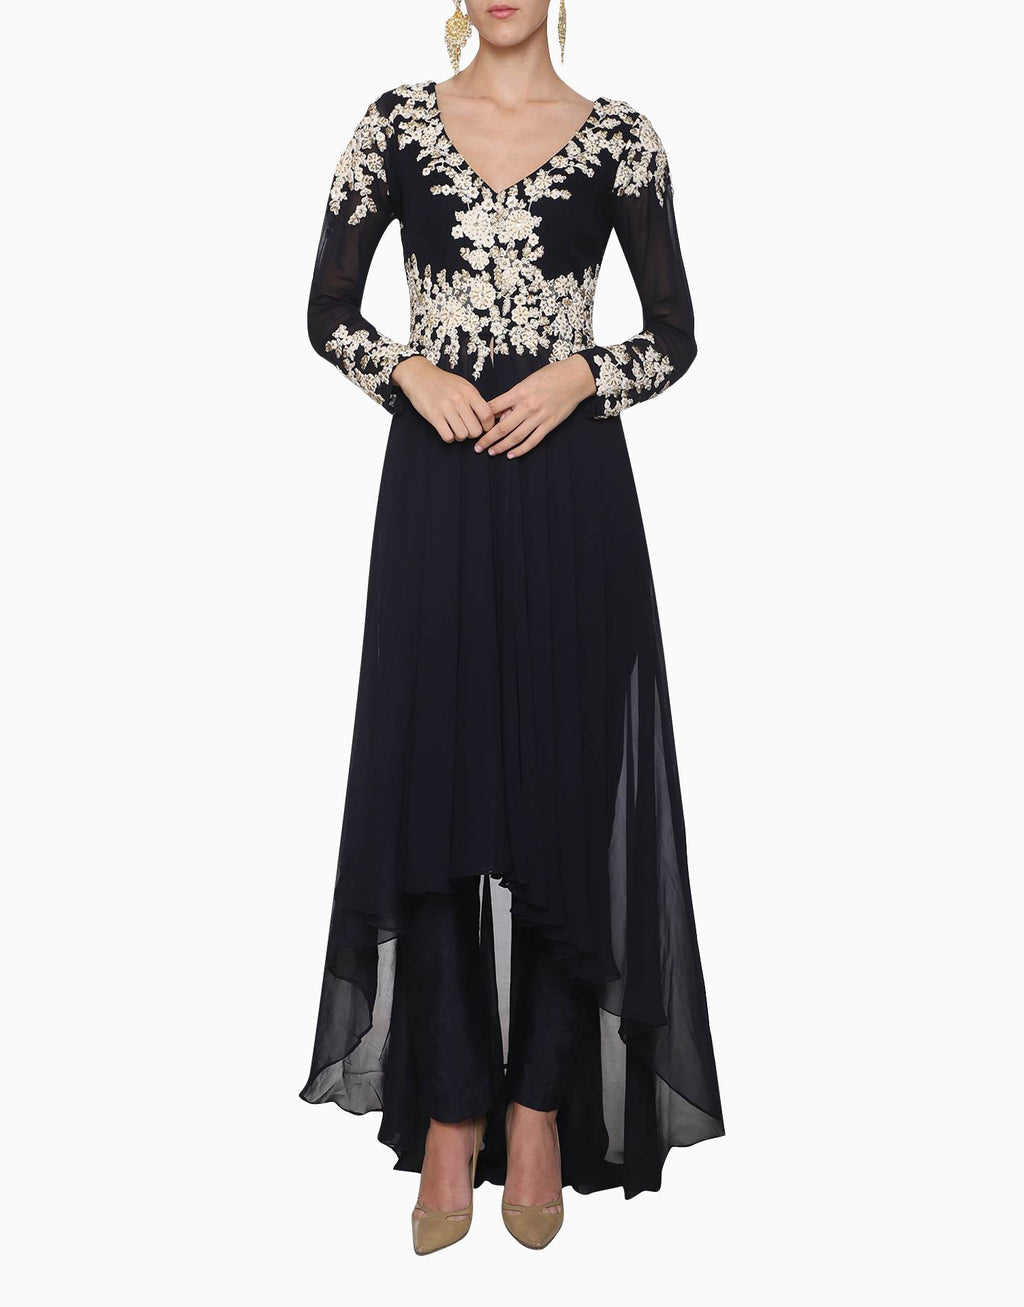 MEGHA & JIGAR NAVY BLUE EMBROIDERED JACKET WITH PANTS